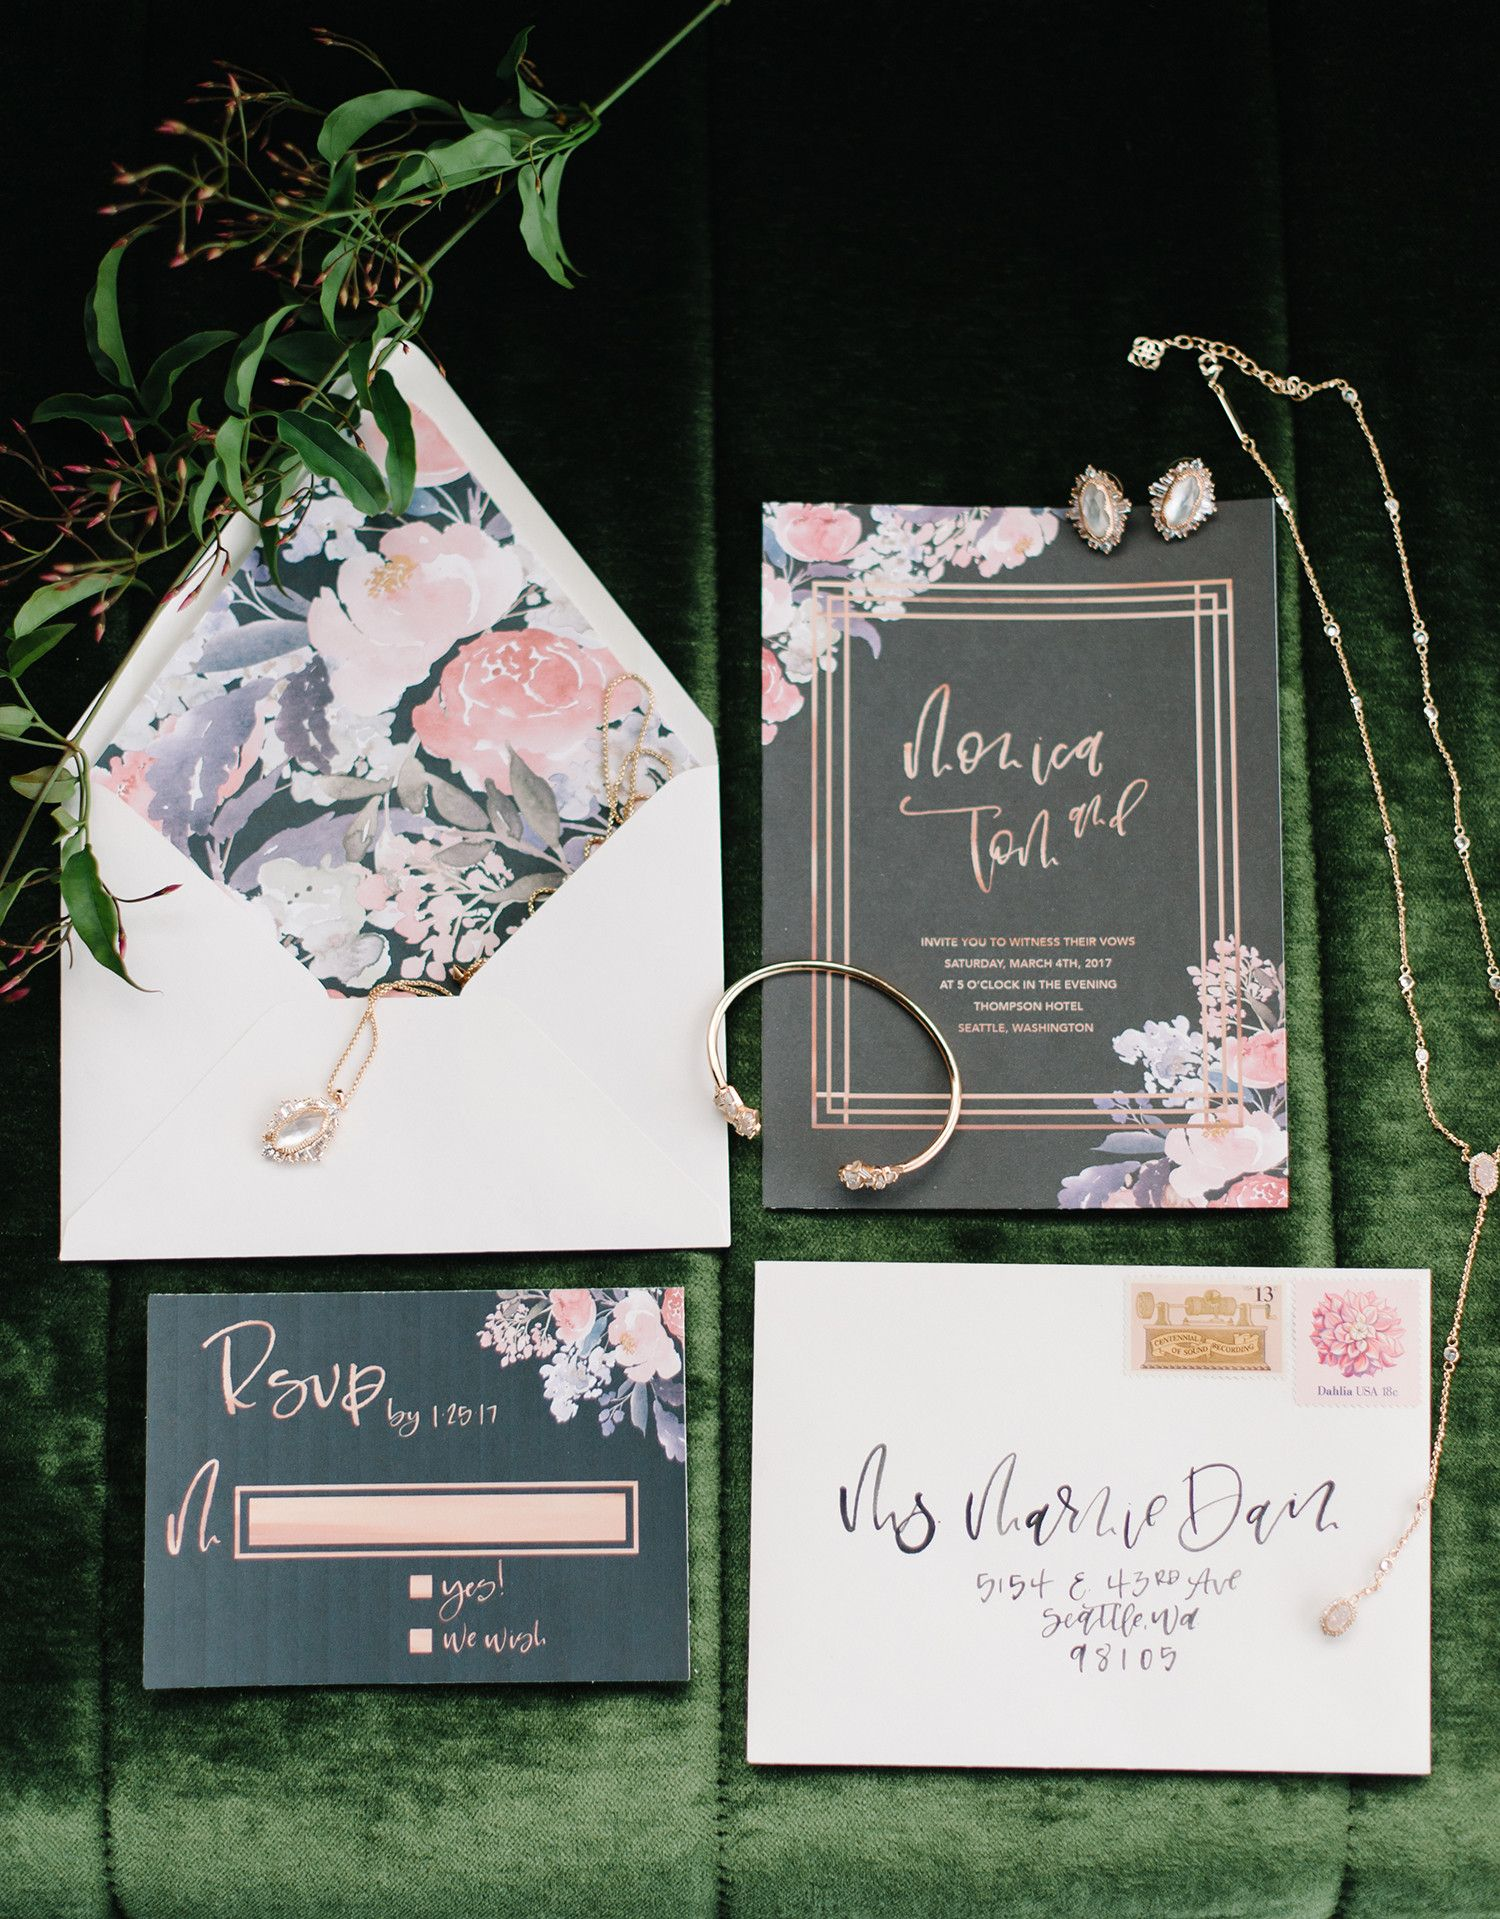 22d2b0aa26f8 The moody color palette and metallic accents in this floral invitation  suite certainly take it to the next level. We love the contrast between the  dark ...